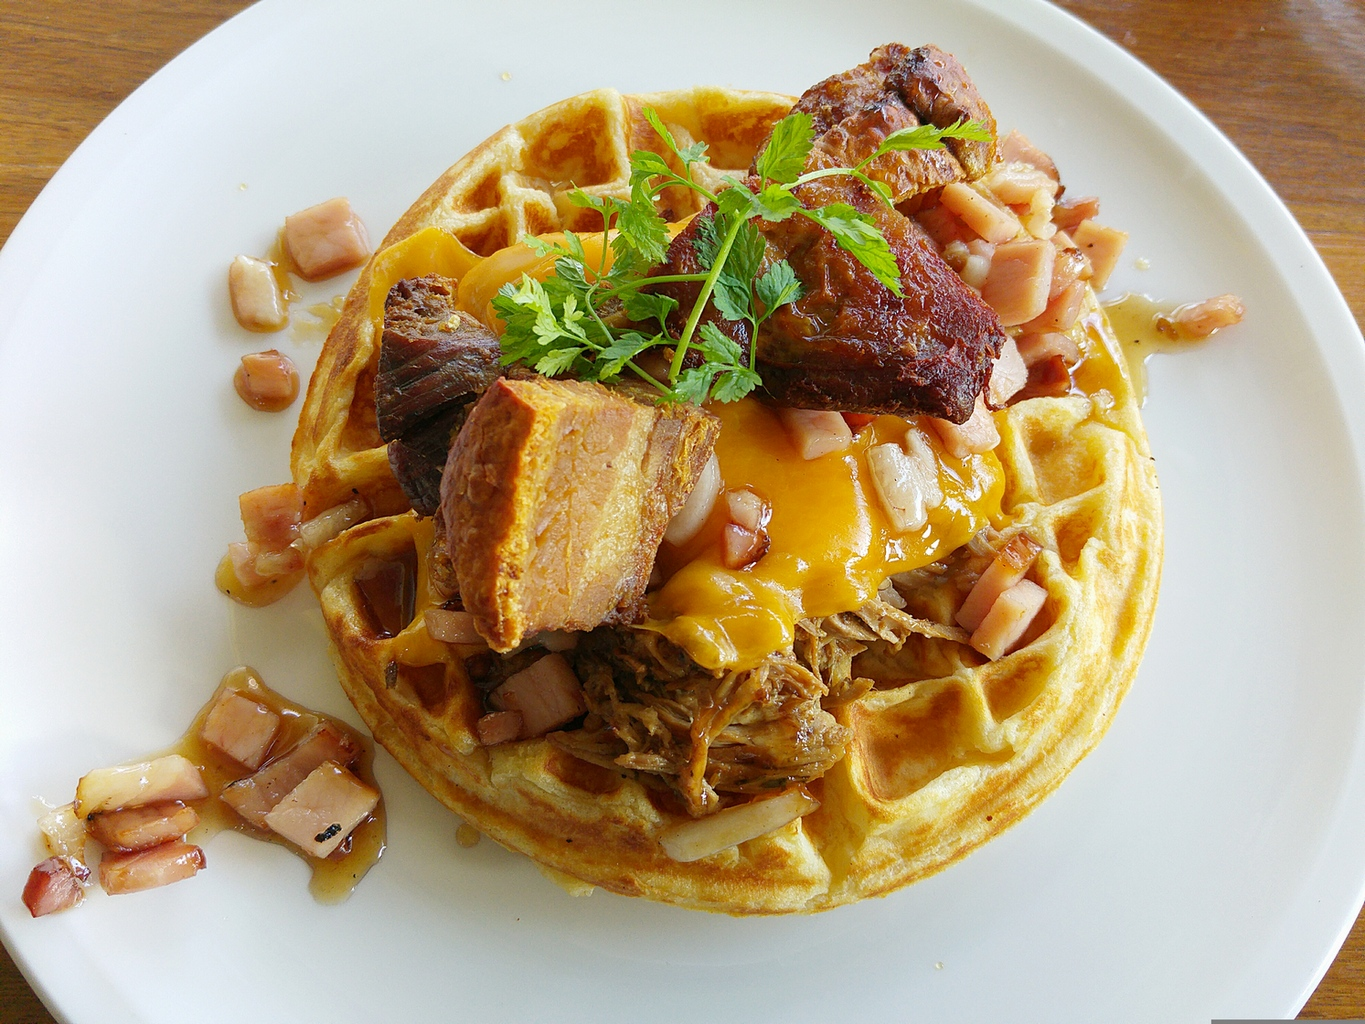 Two little pigs waffle